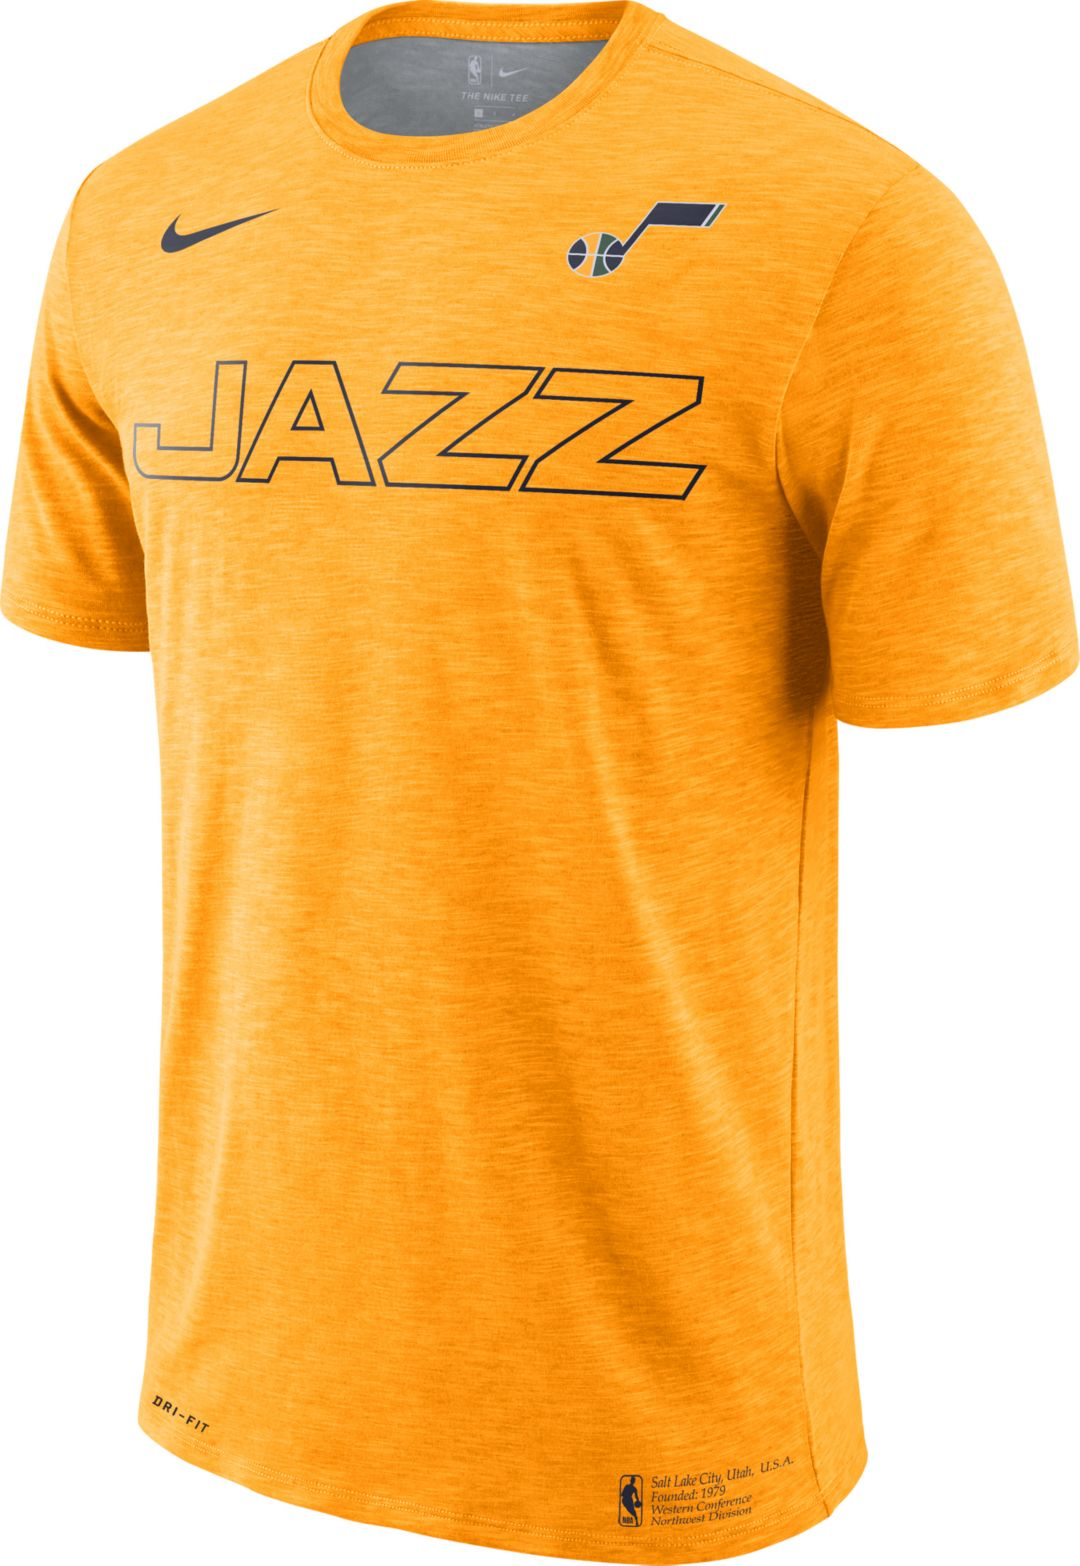 on sale 6b165 d1e9d Nike Men's Utah Jazz Dri-FIT Facility T-Shirt